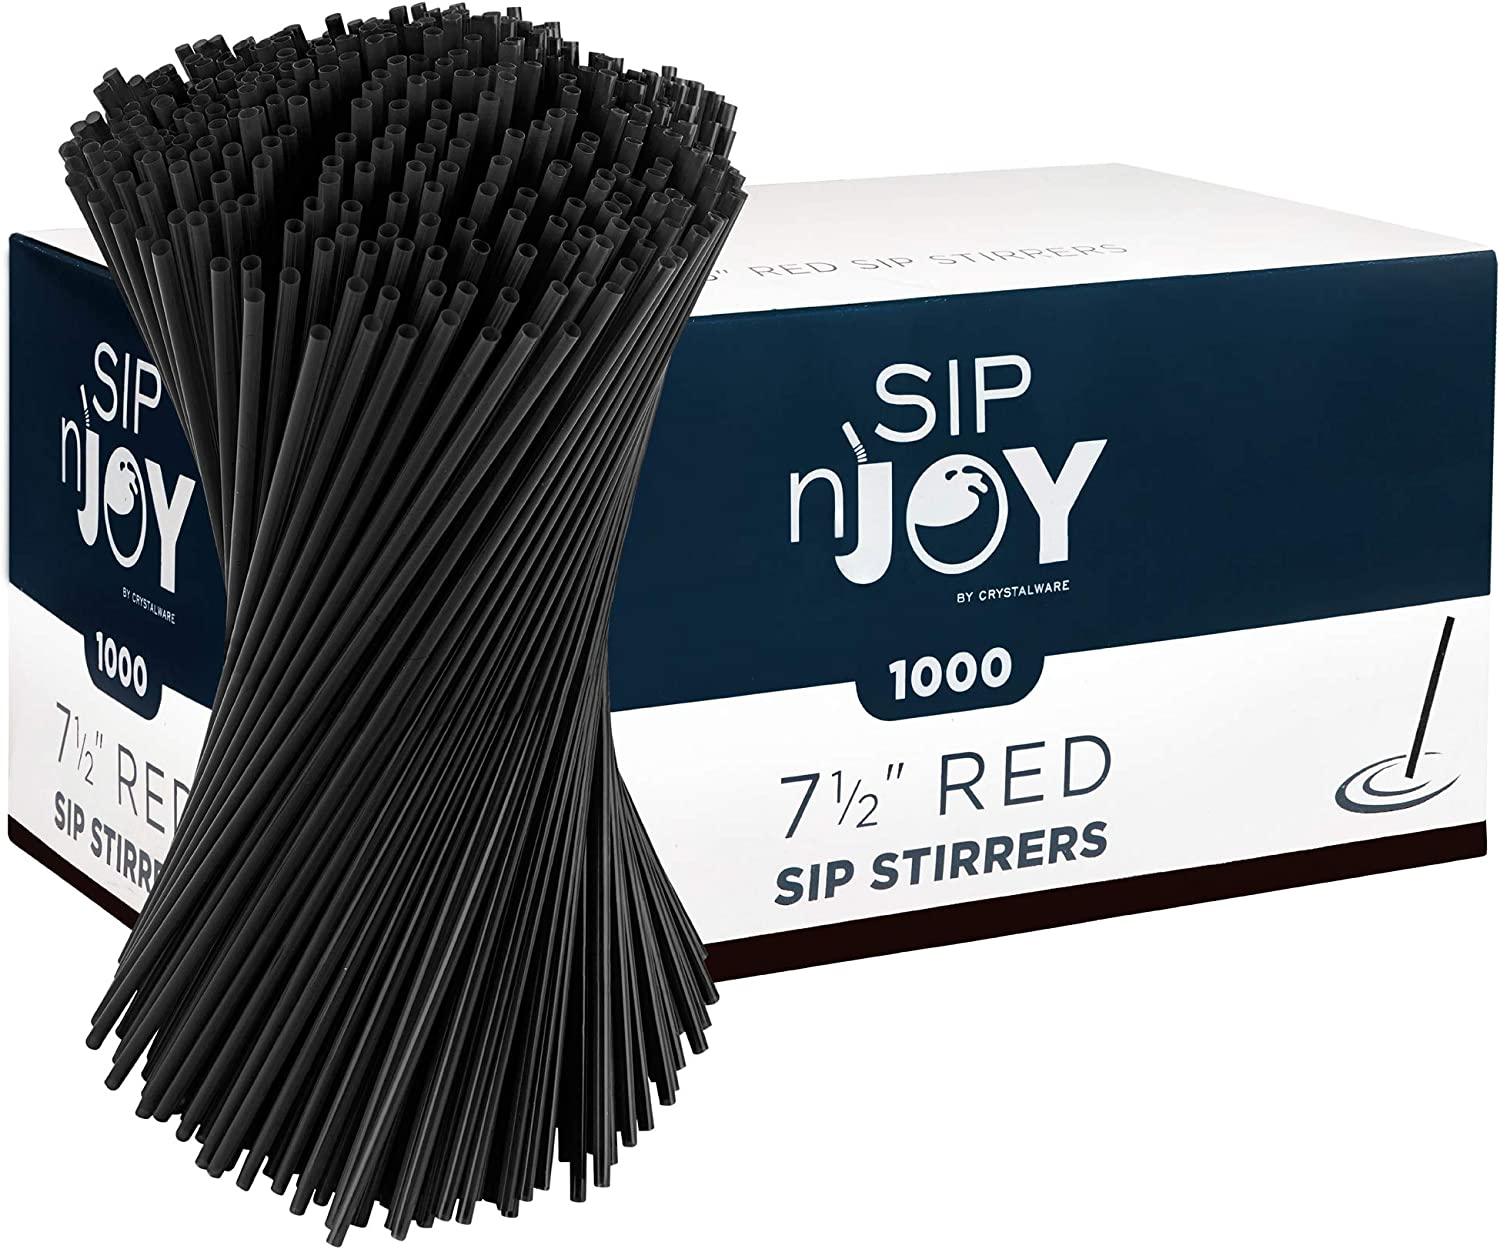 Sticks 1000 Count - Black Cocktails For Sipping 5 inch Plastic Stirrer Stick Disposable Sip Straws Coffee Stirrers Bars